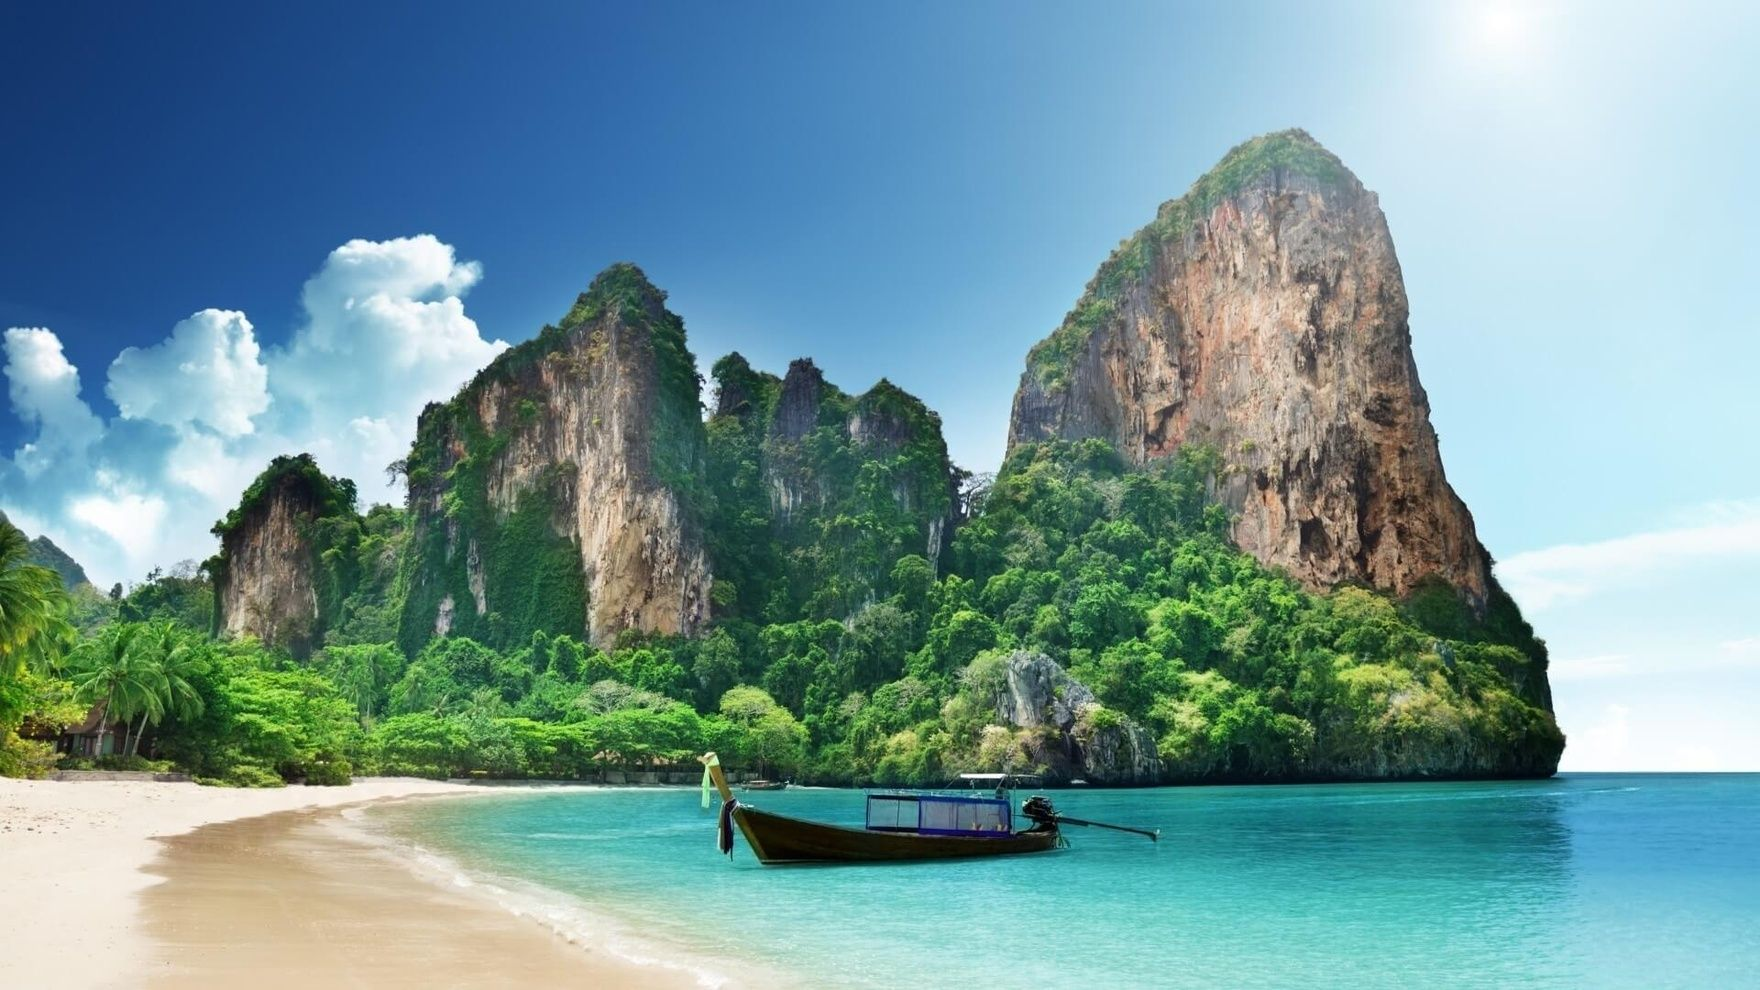 A one-week trip to the Thailand islands